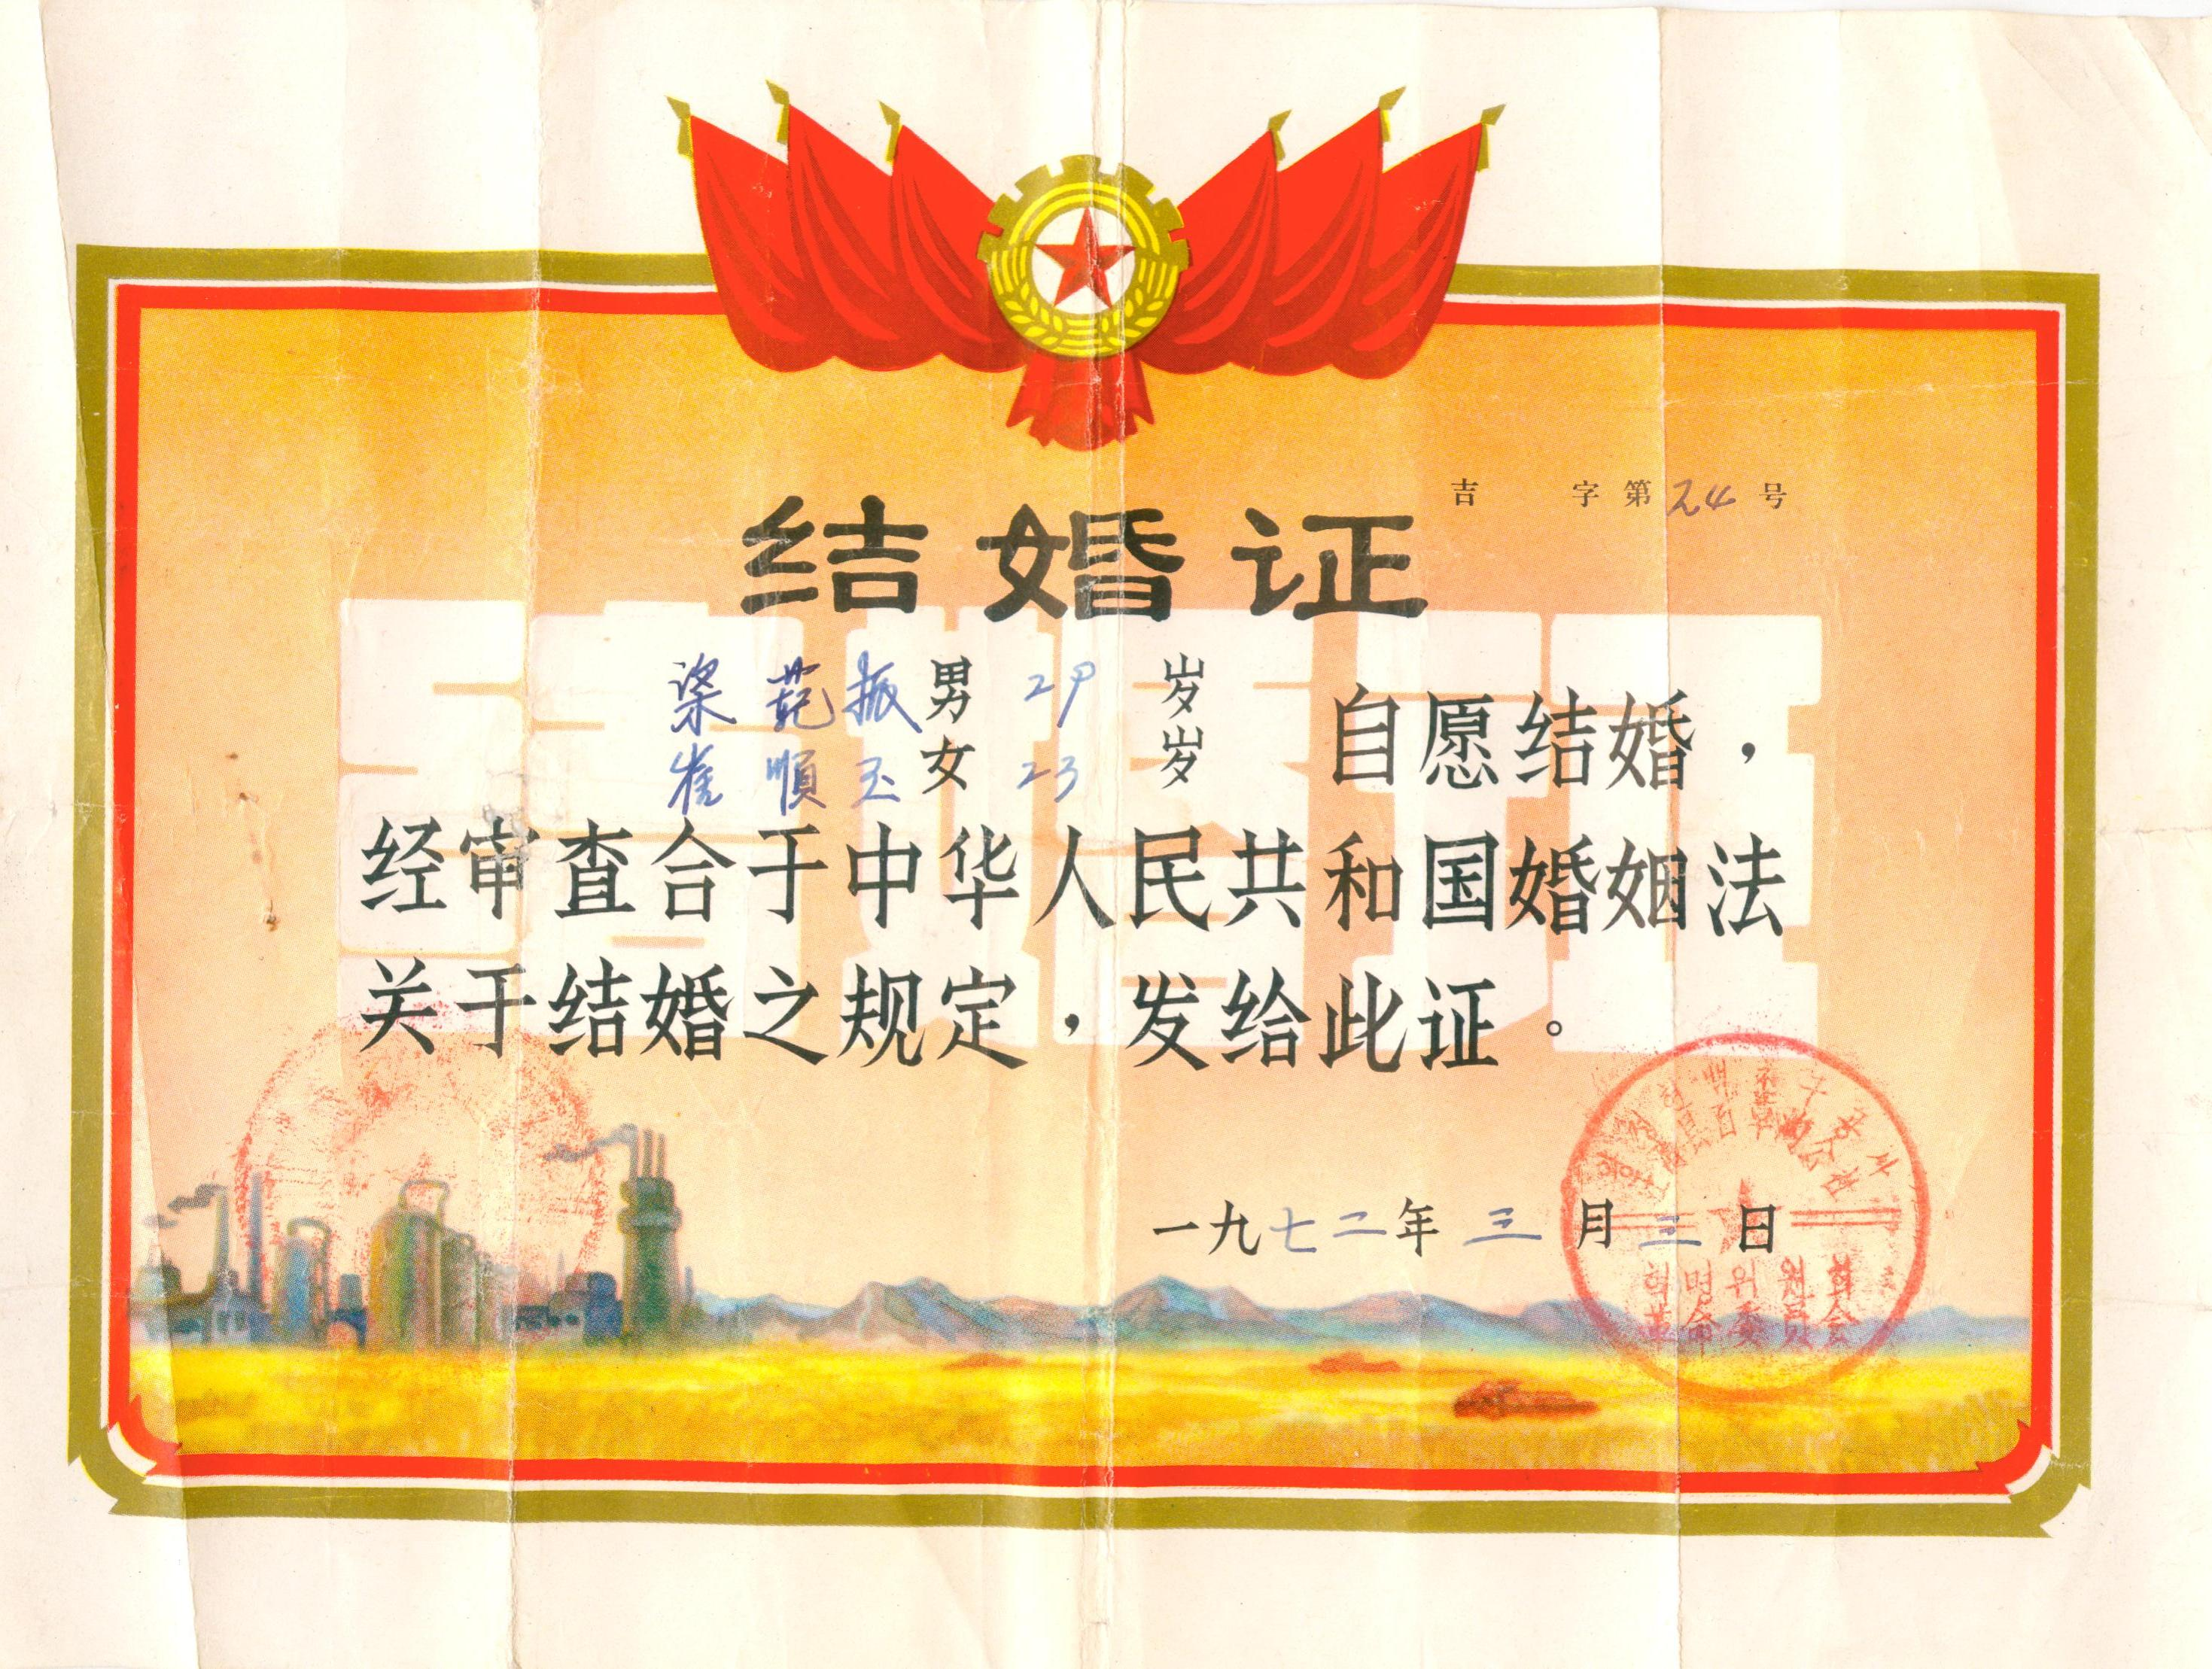 D5101, China Marriage Certificate 1972, Korean & Chinese Languages